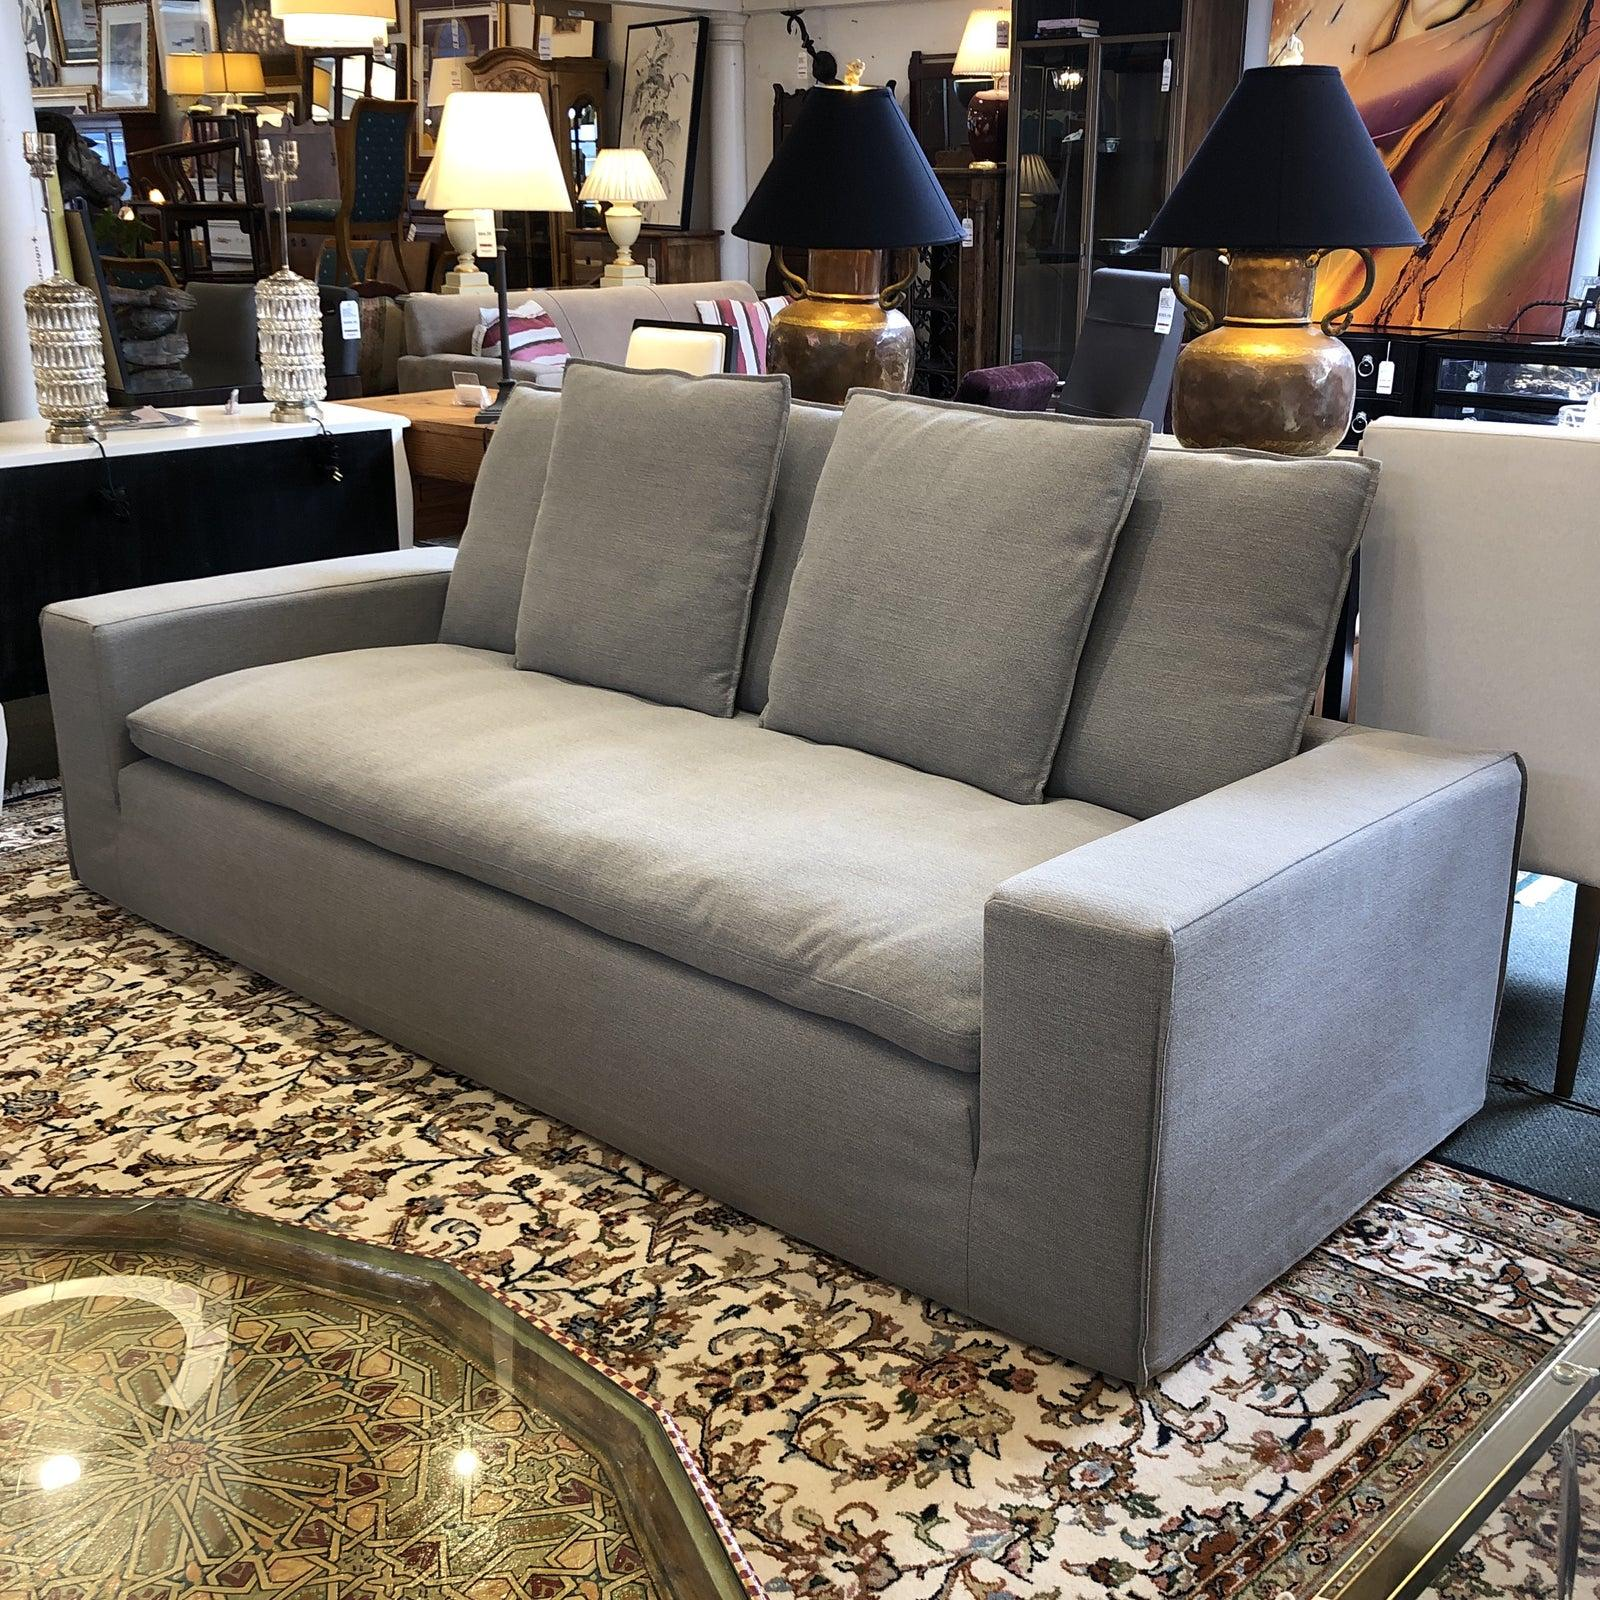 Stupendous Four Hands Contemporary Gray Sofa And Chaise For Sale At 1Stdibs Camellatalisay Diy Chair Ideas Camellatalisaycom